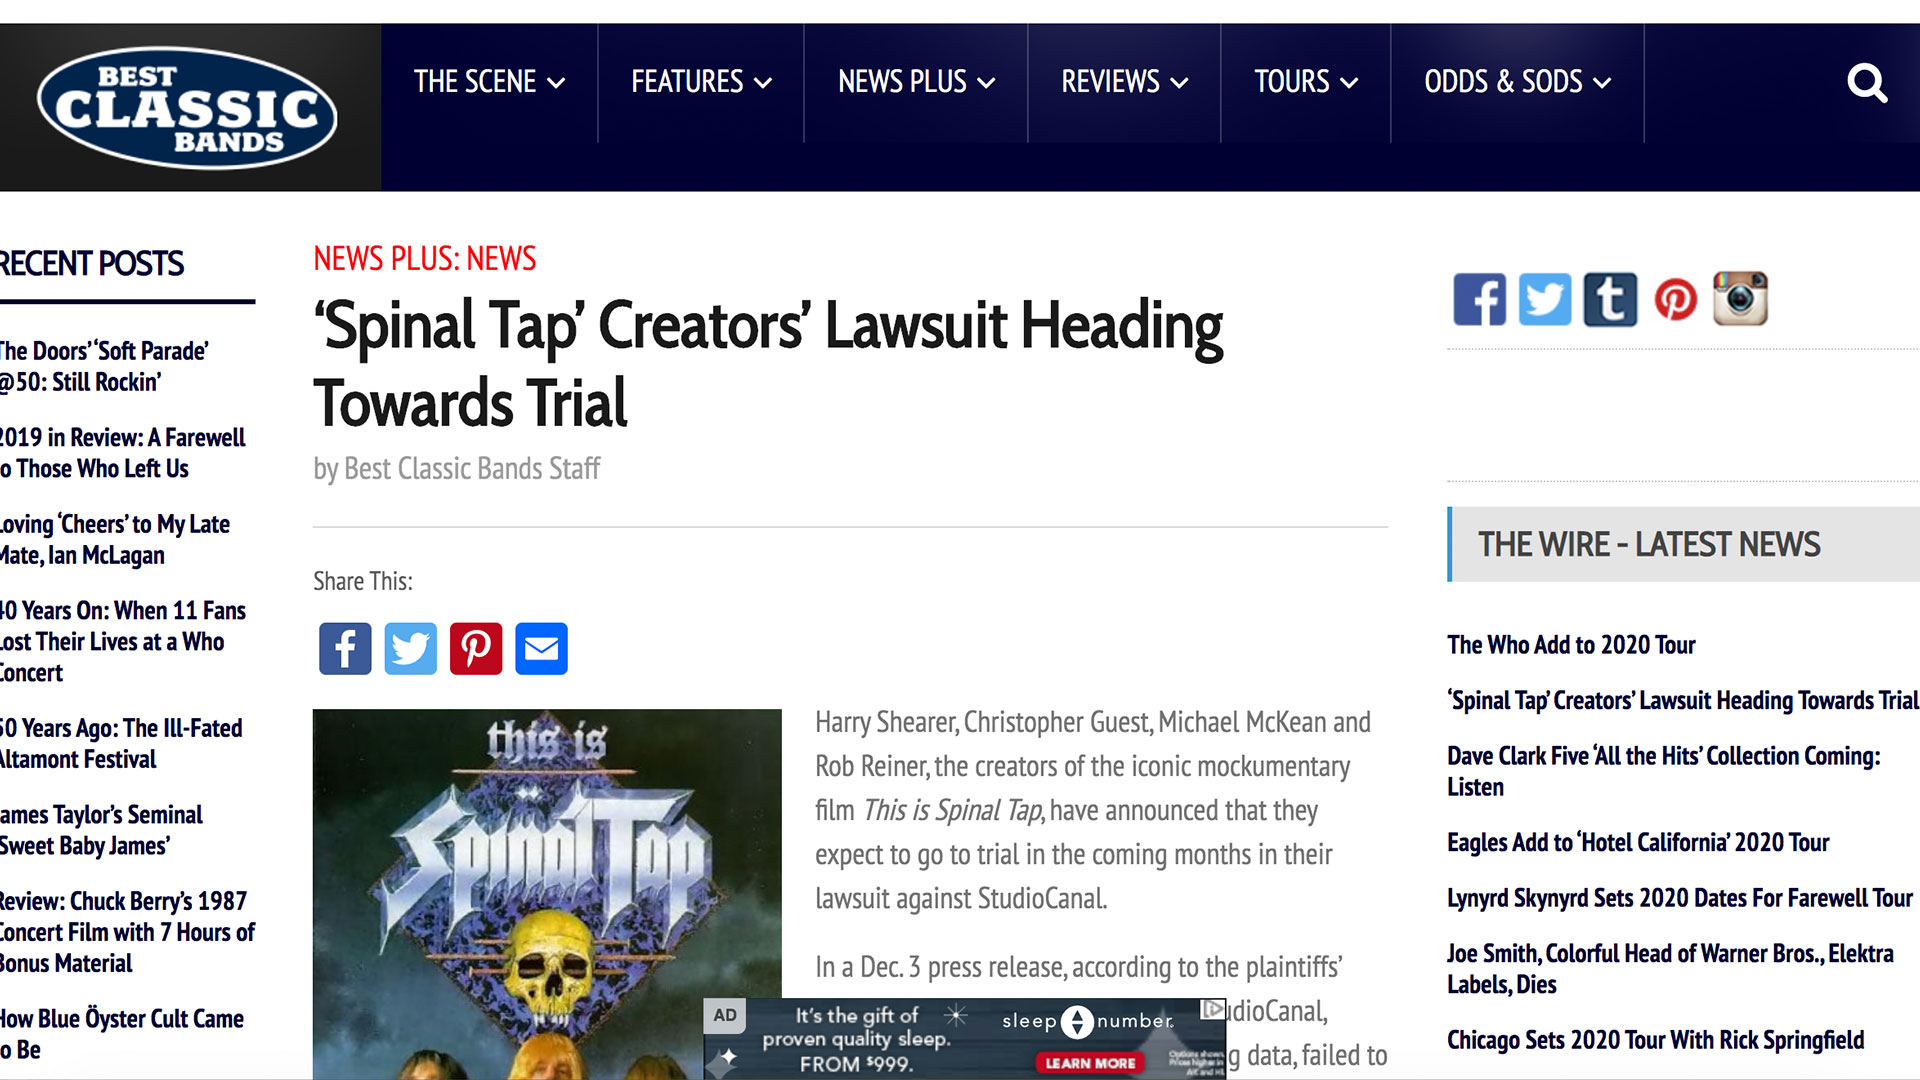 Fairness Rocks News 'Spinal Tap' Creators' Lawsuit Heading Towards Trial